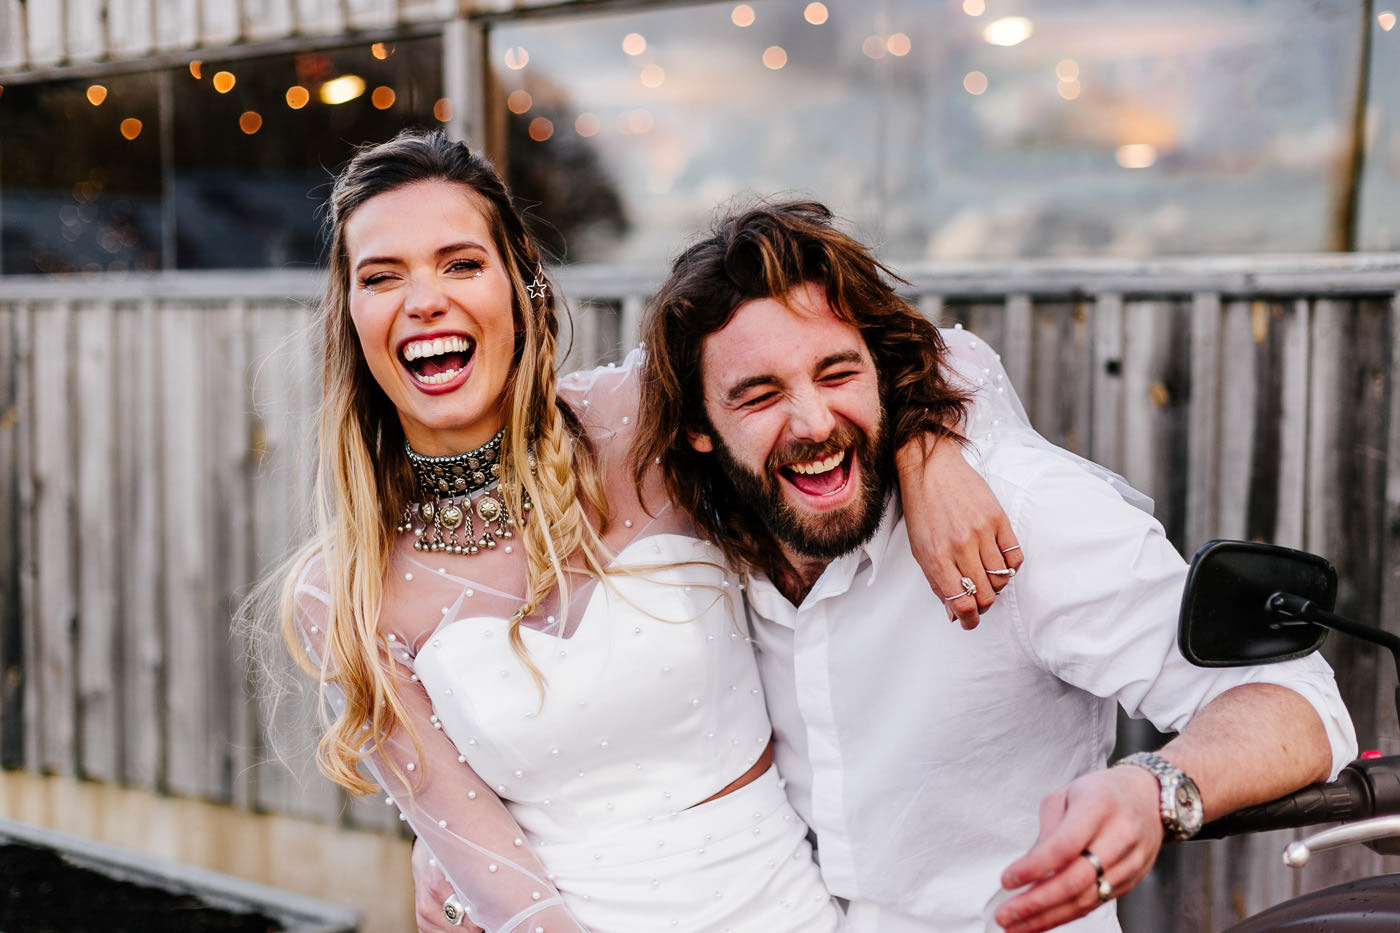 Indie-Boho-Elopement-wedding-photographer-London-Epic-Love-Story-082